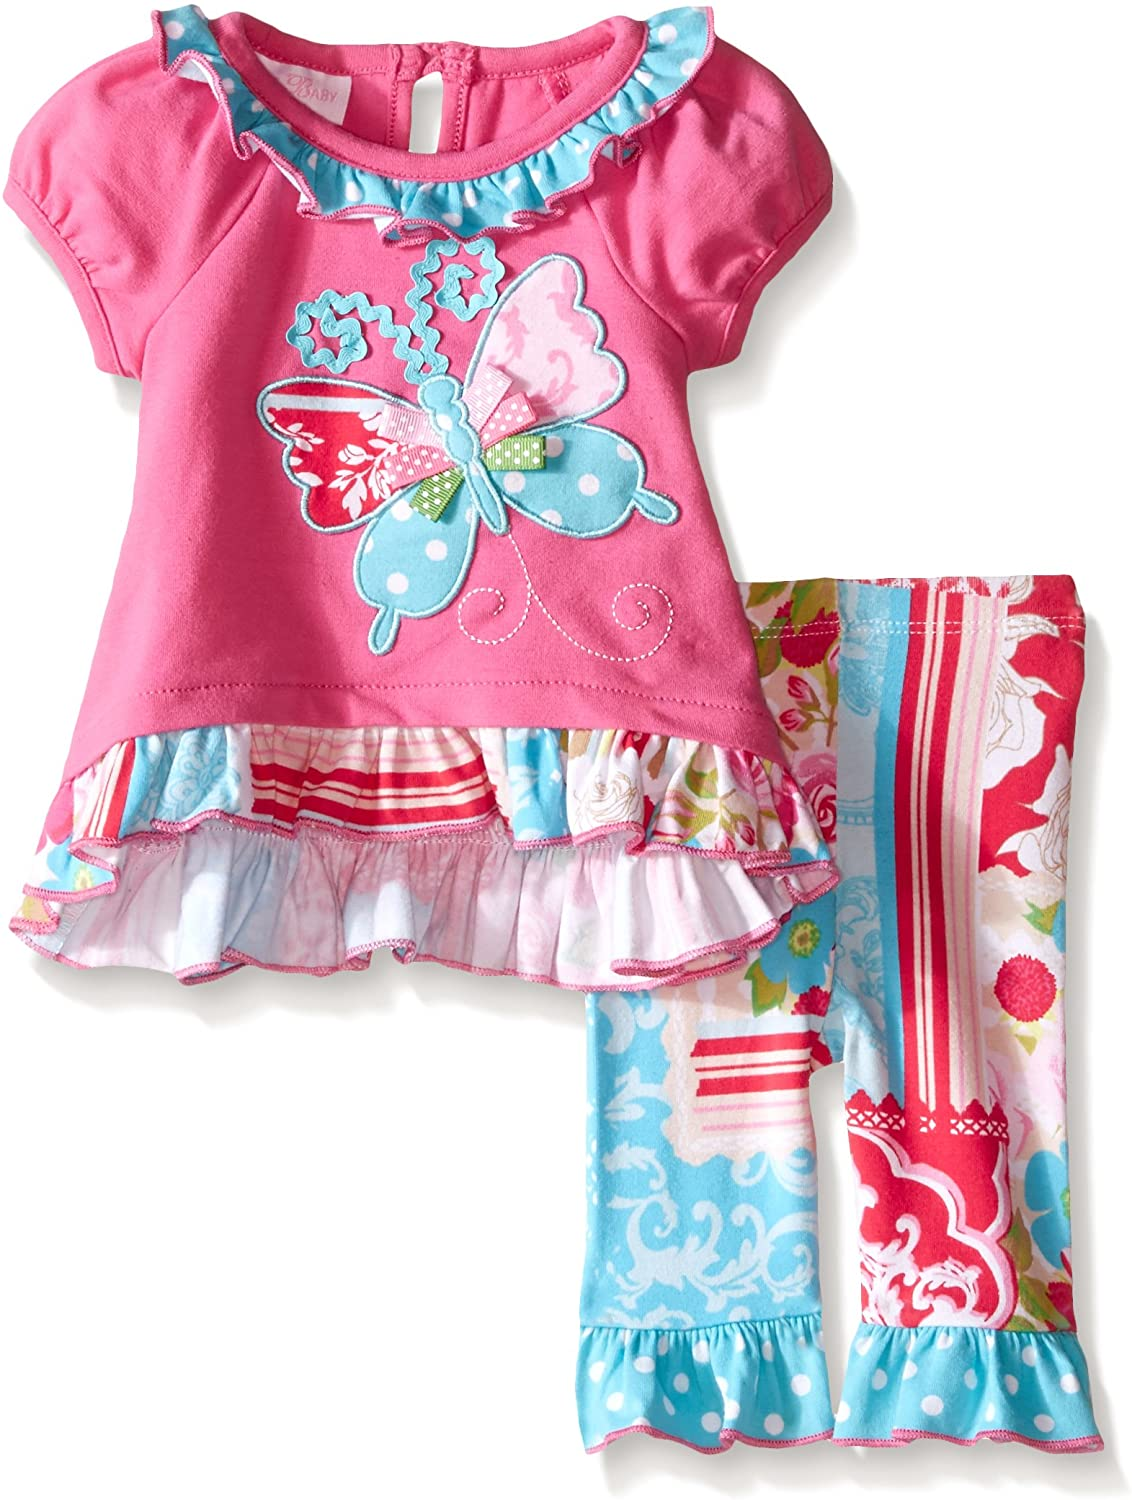 Bonnie Baby Baby Girls' Appliqued Knit Playwear Set